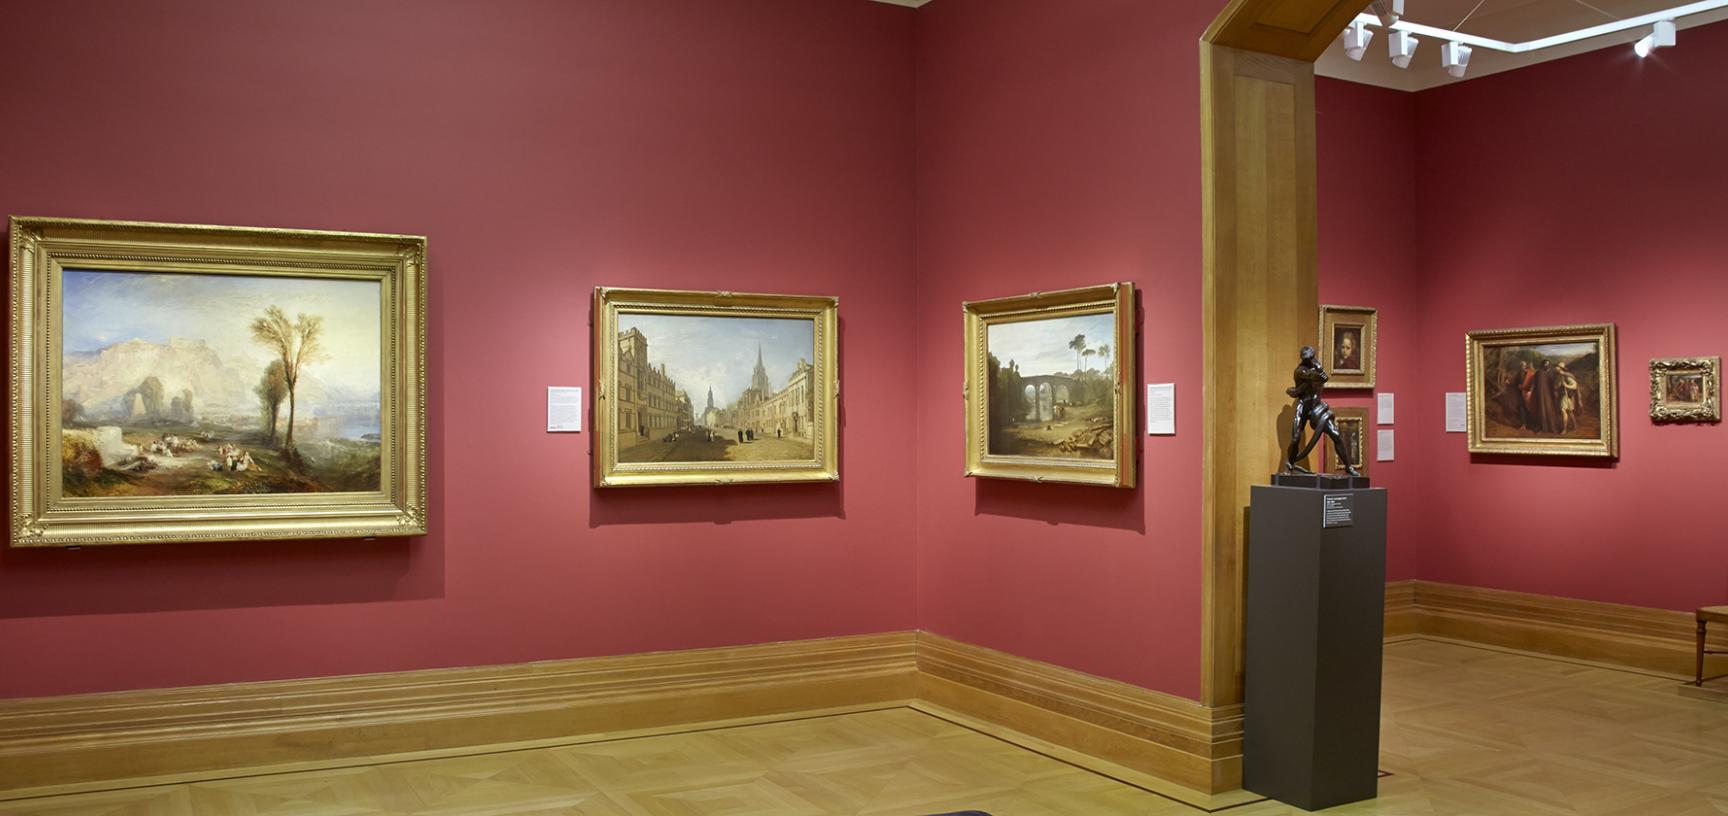 The 19th-Century Art Gallery at the Ashmolean Museum